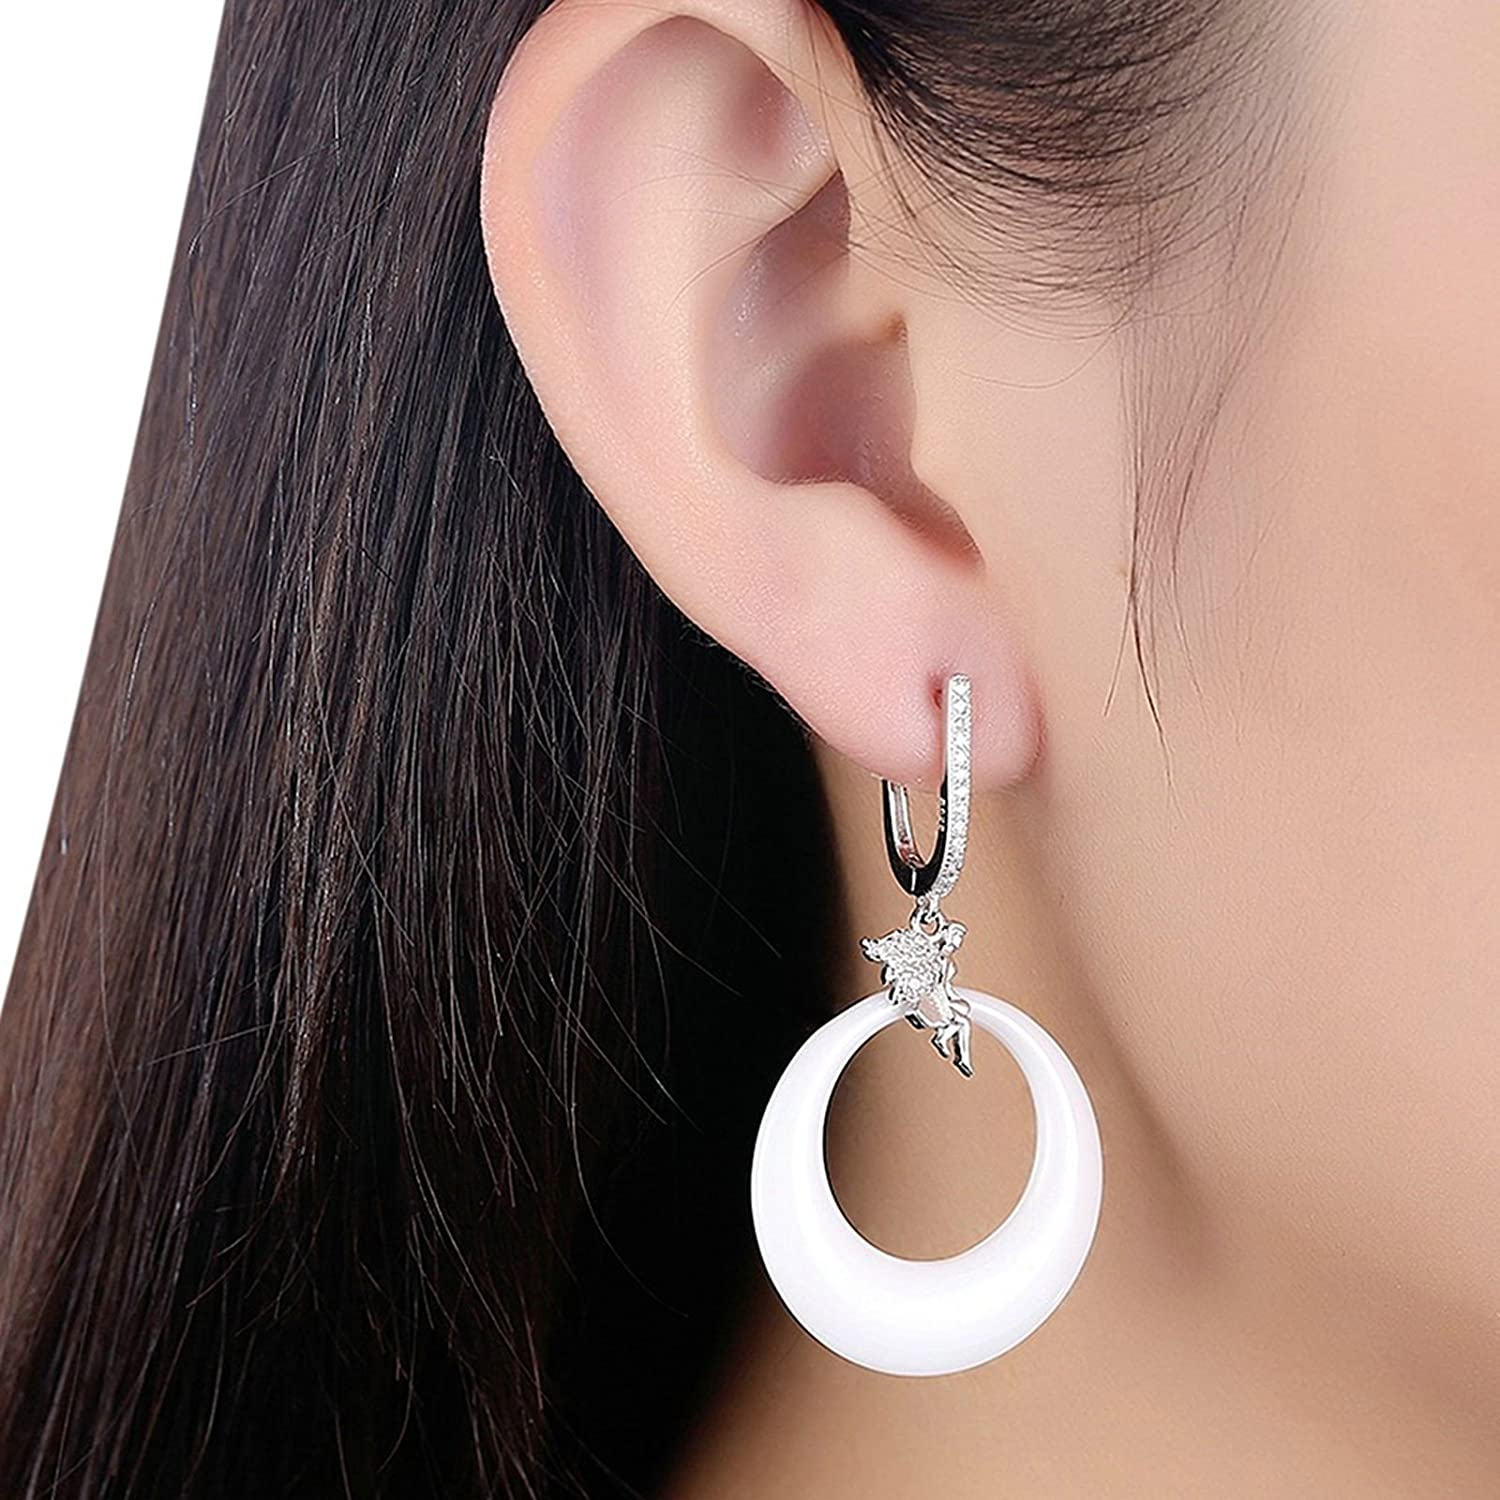 MoAndy Jewelry S925 Sterling Silver Women Stud Earring Angel Ceramic Round Ear Pierced